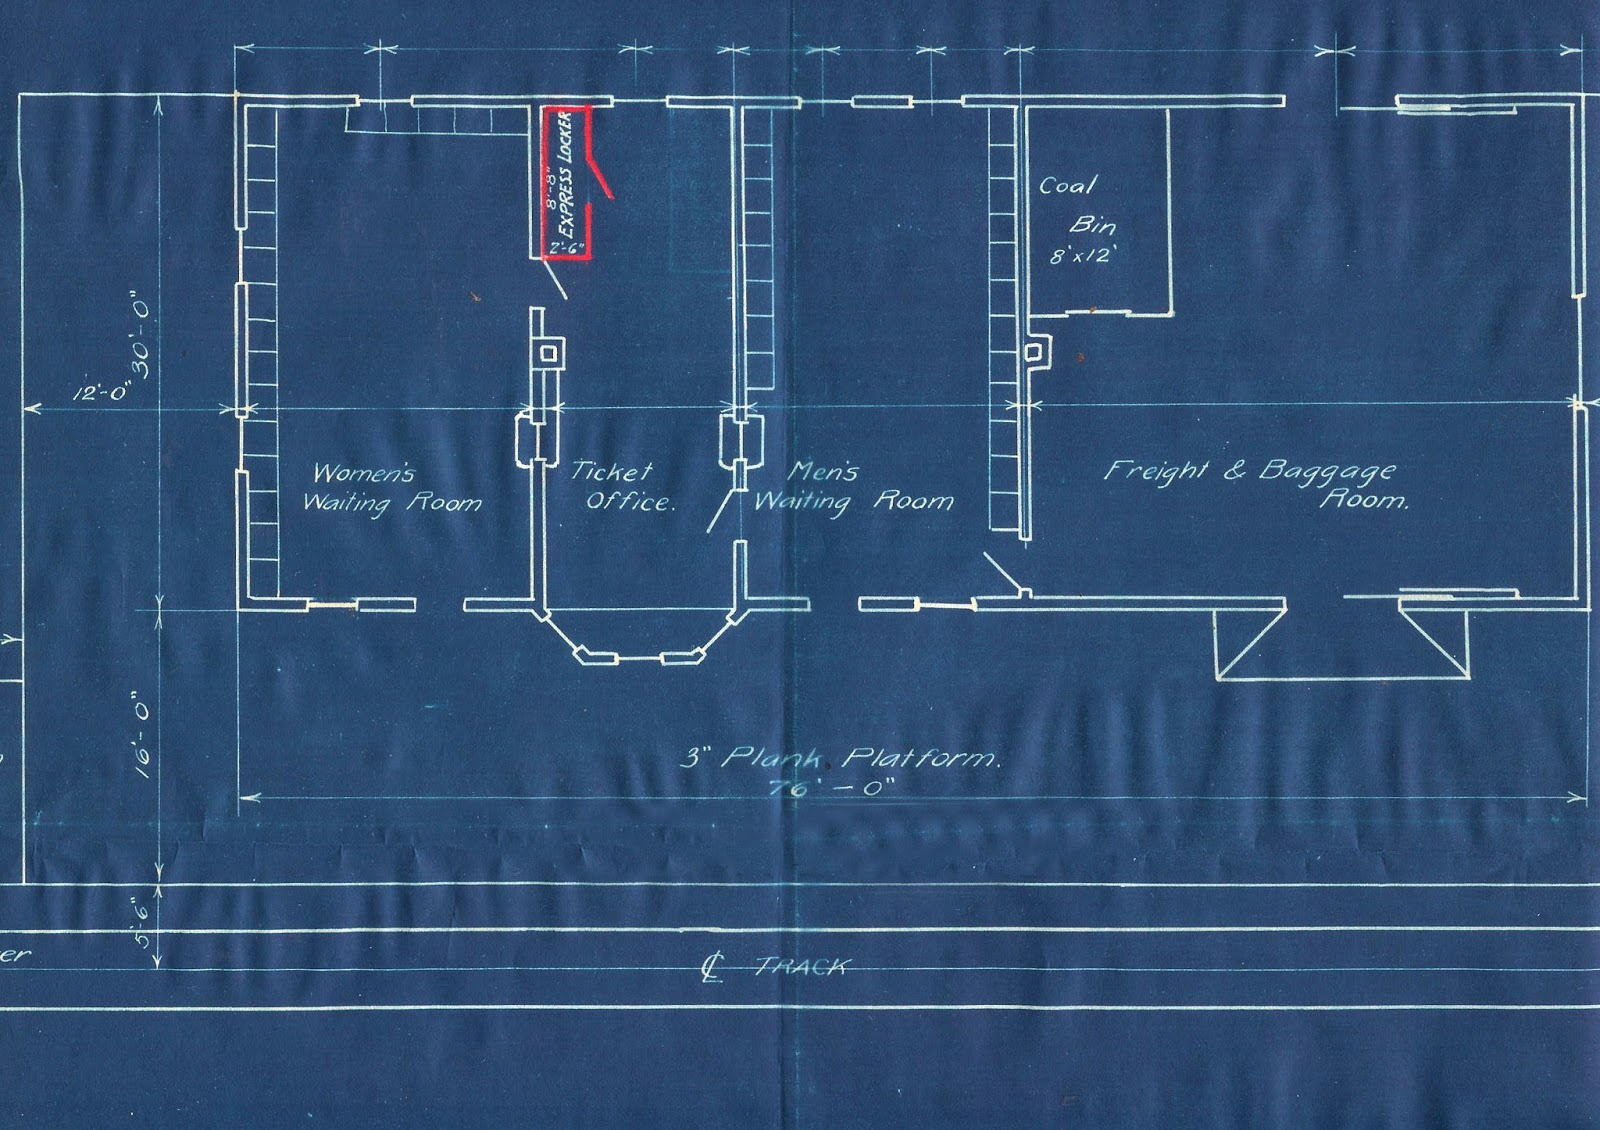 Great northern rwys mansfield branch line 1909 1985 and the mansfield depot blueprints malvernweather Choice Image